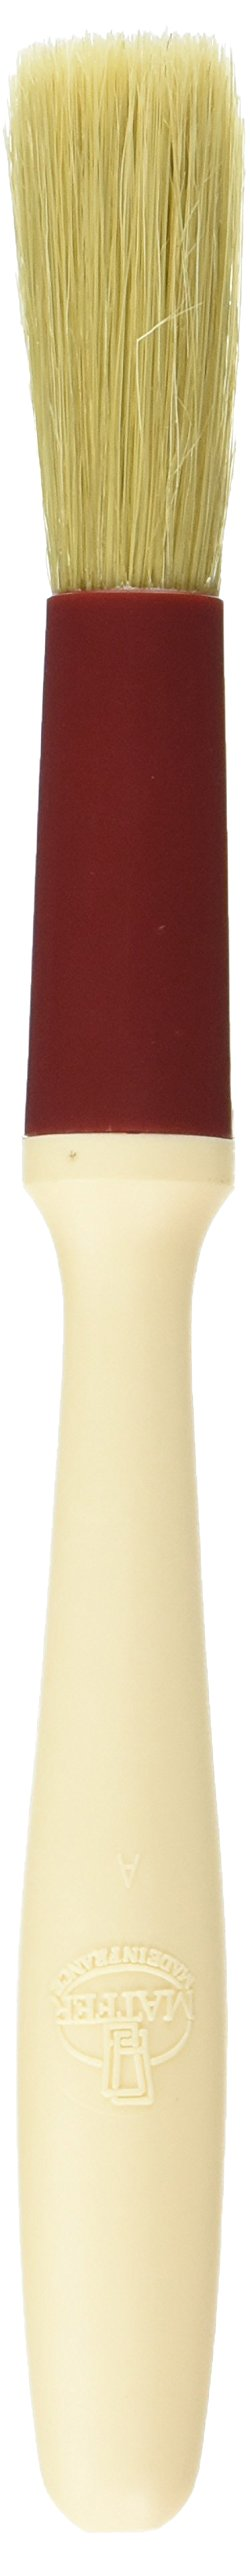 Matfer Bourgeat 116020 Round Pastry Brush